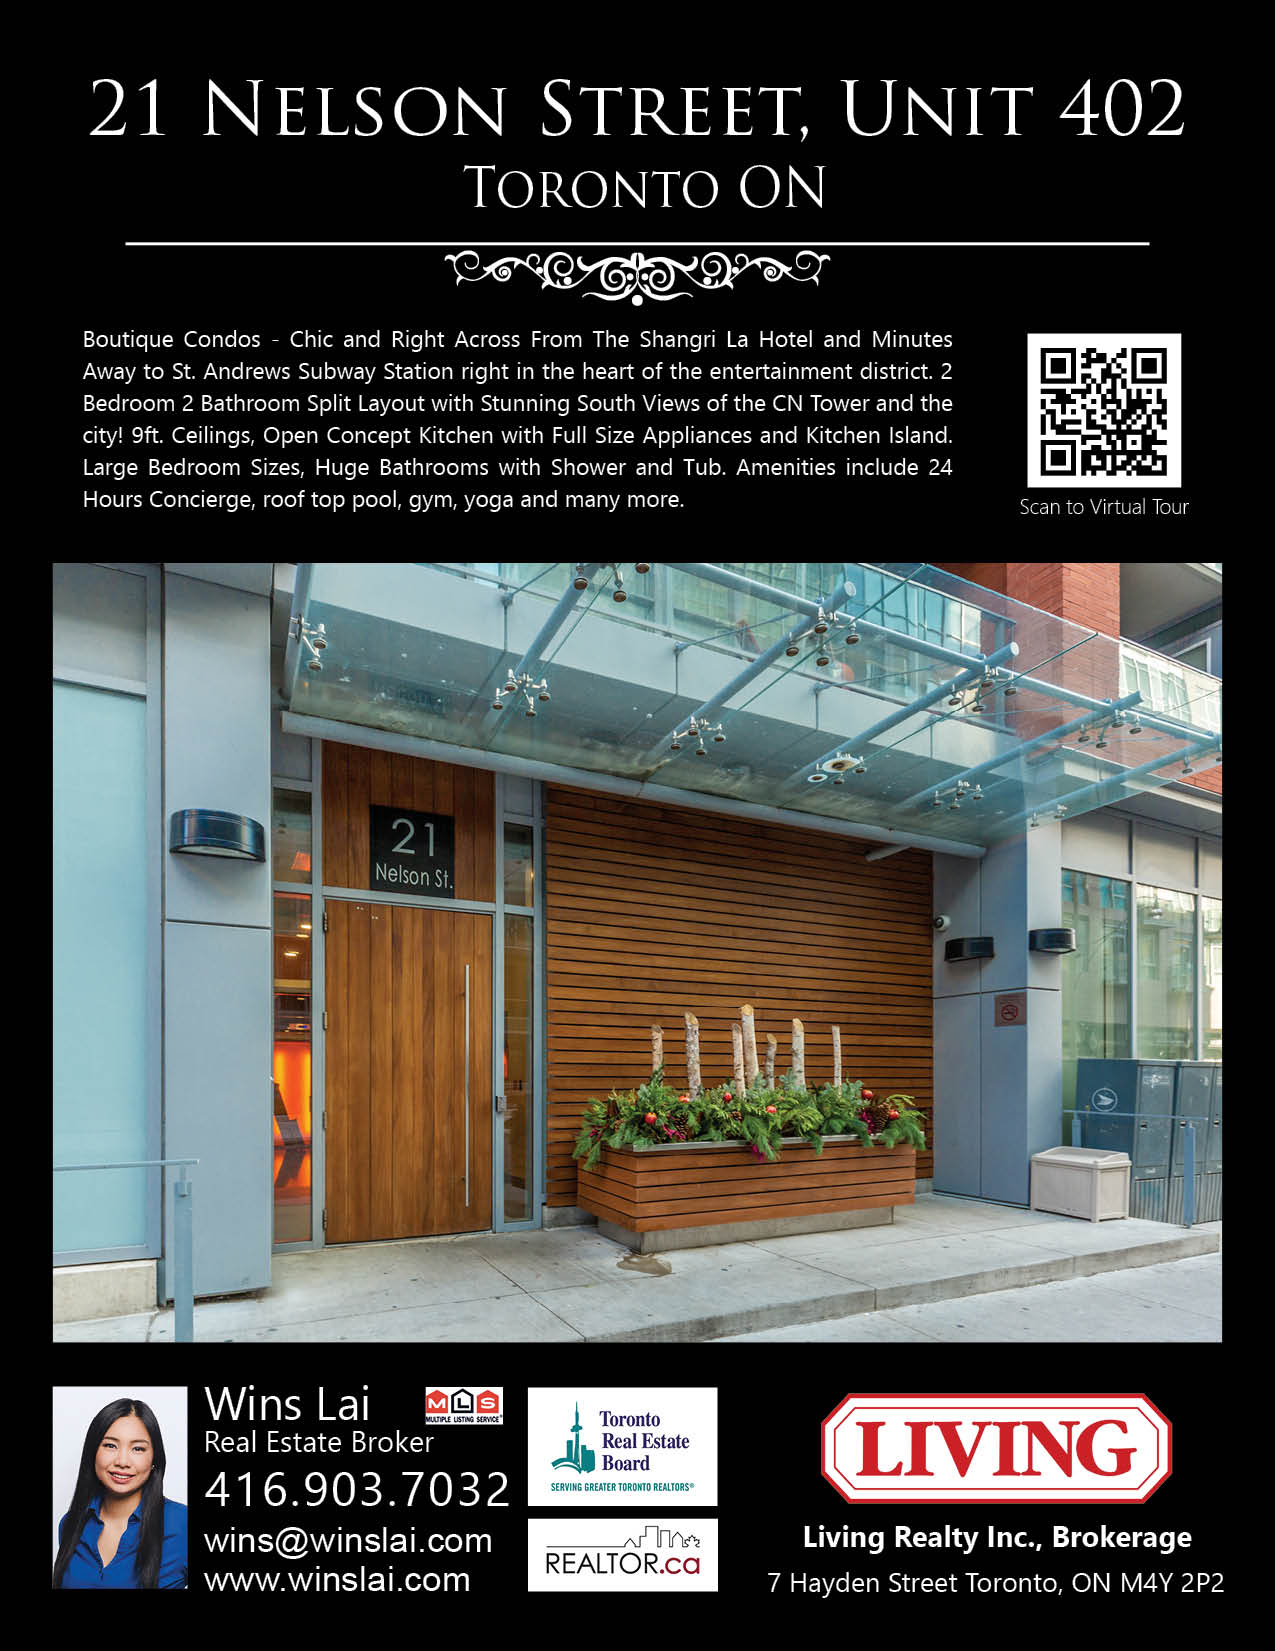 21 Nelson Street - Unit 402 - Quick Overview